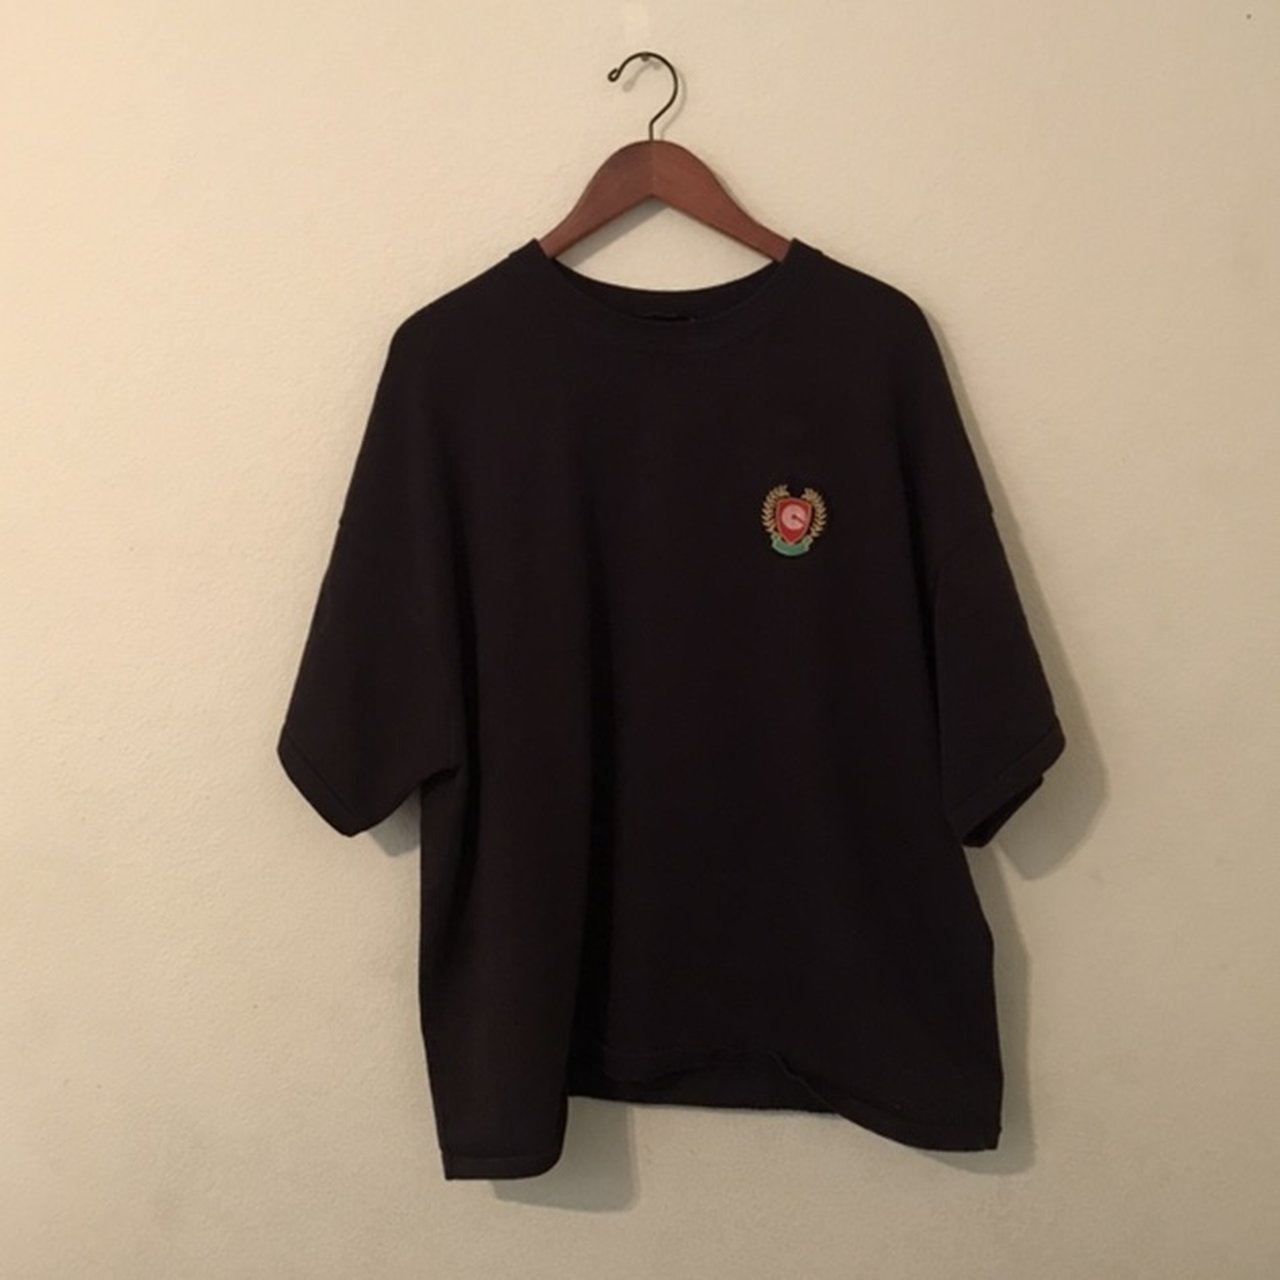 693e7509 Yeezy Season 5 Calabasas Patch Tee. TAG SAYS M BUT DUE TO TO - Depop